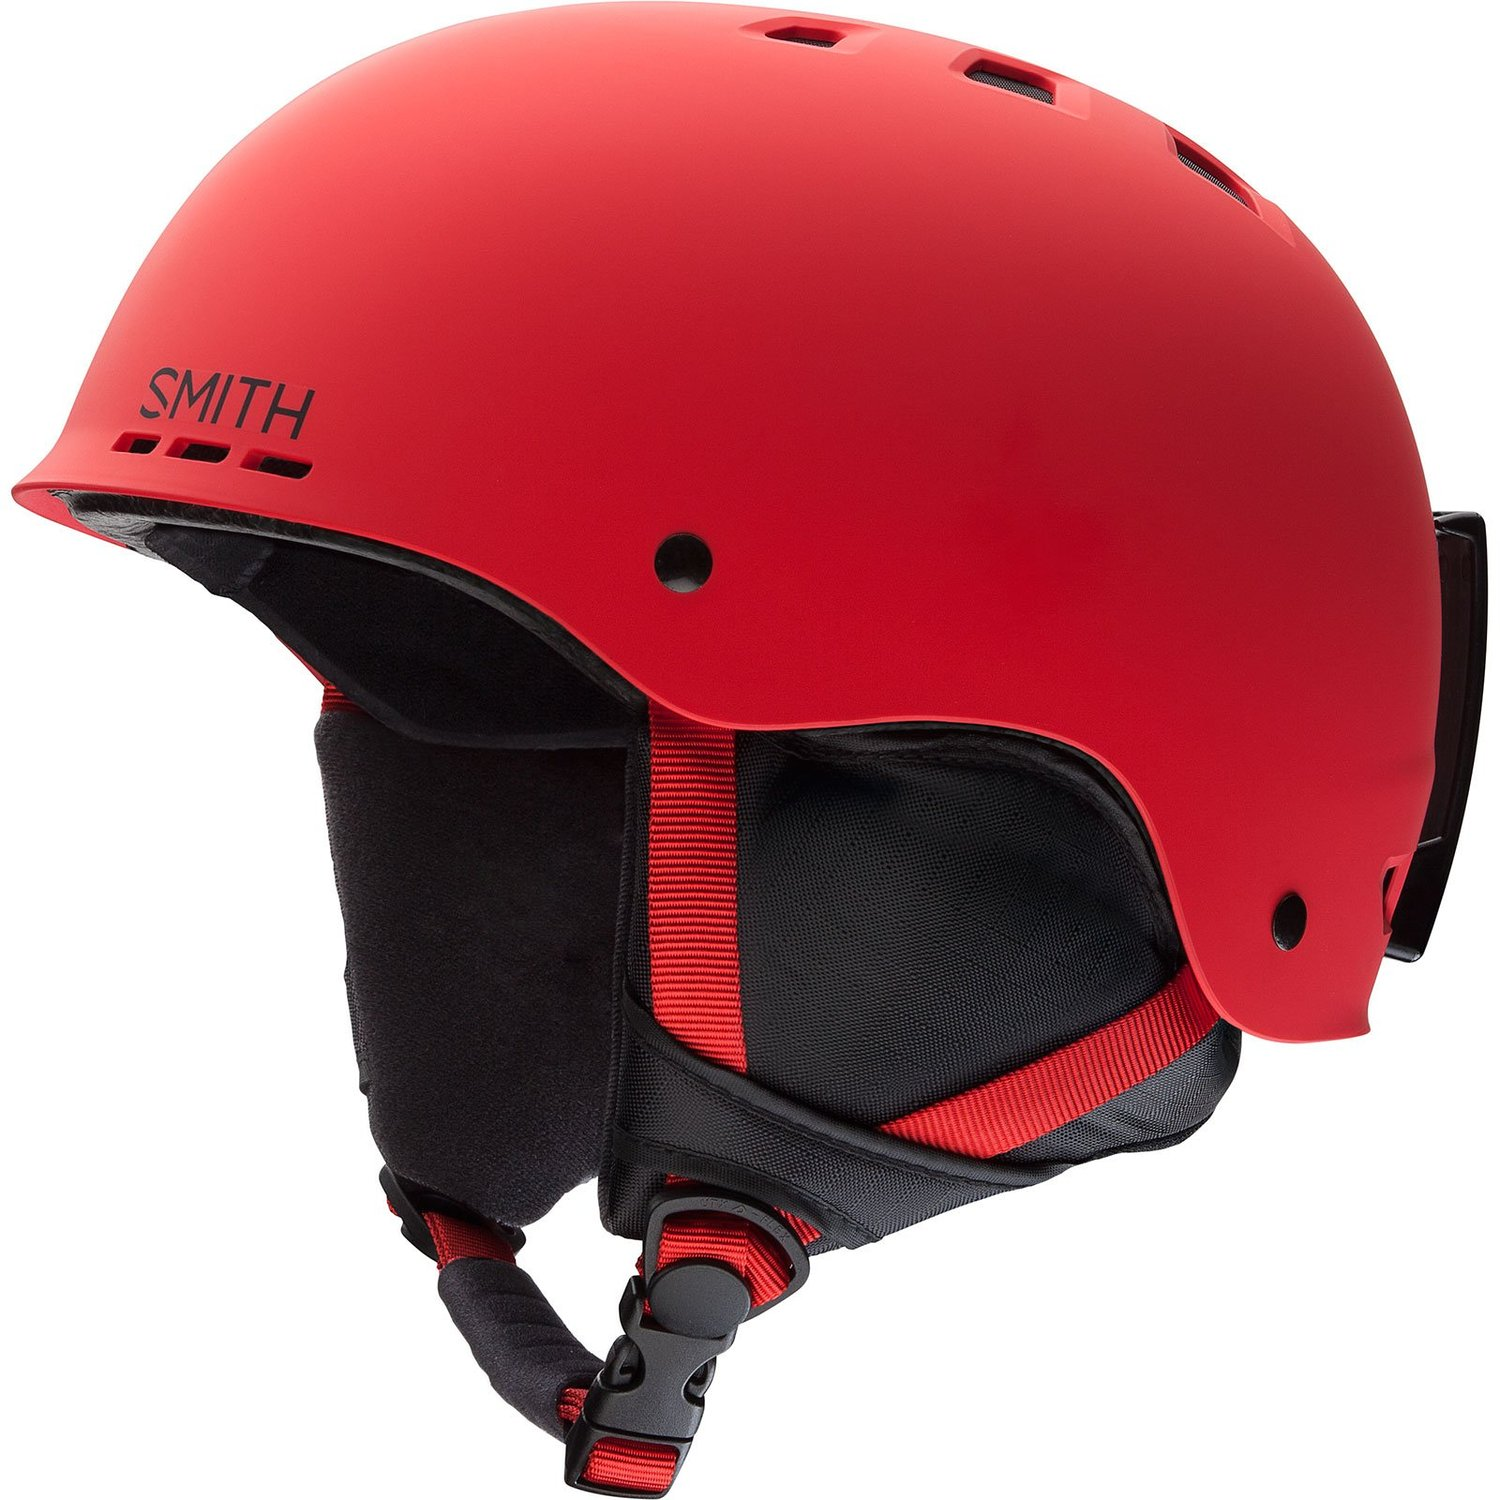 Smith Optics Holt Helmet Mens by Smith